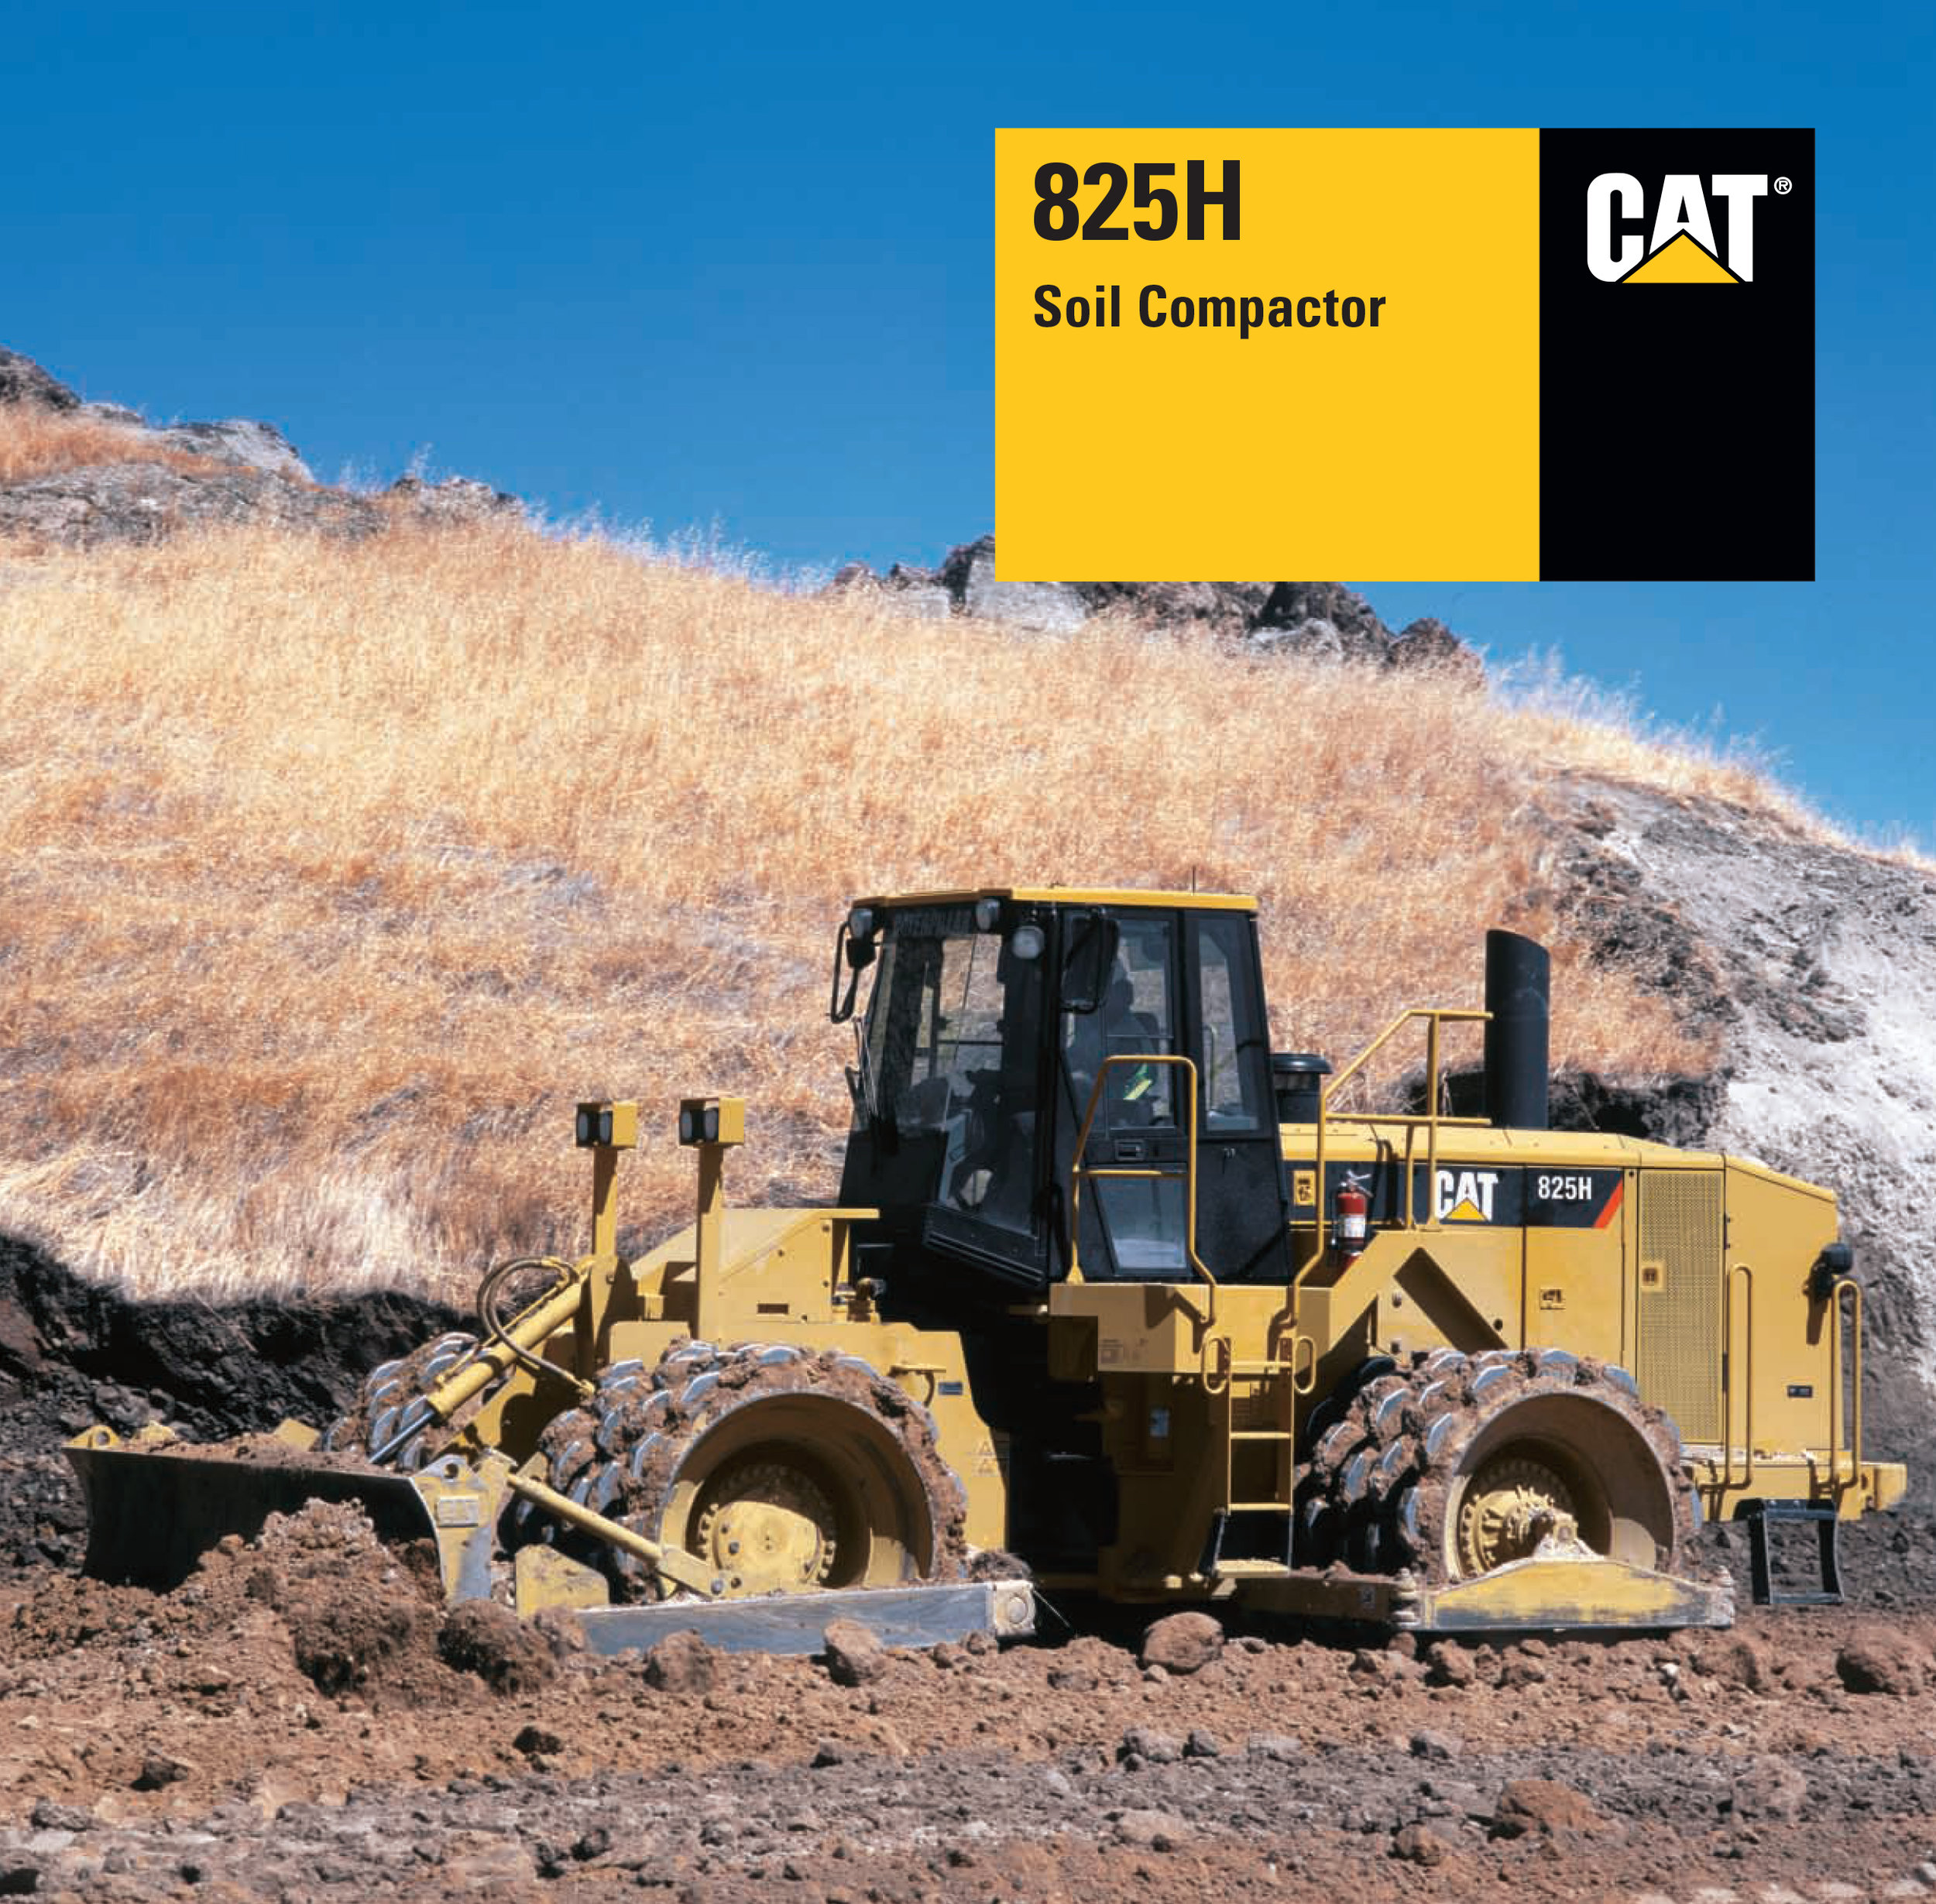 Click on the image to download the full CAT brochure.